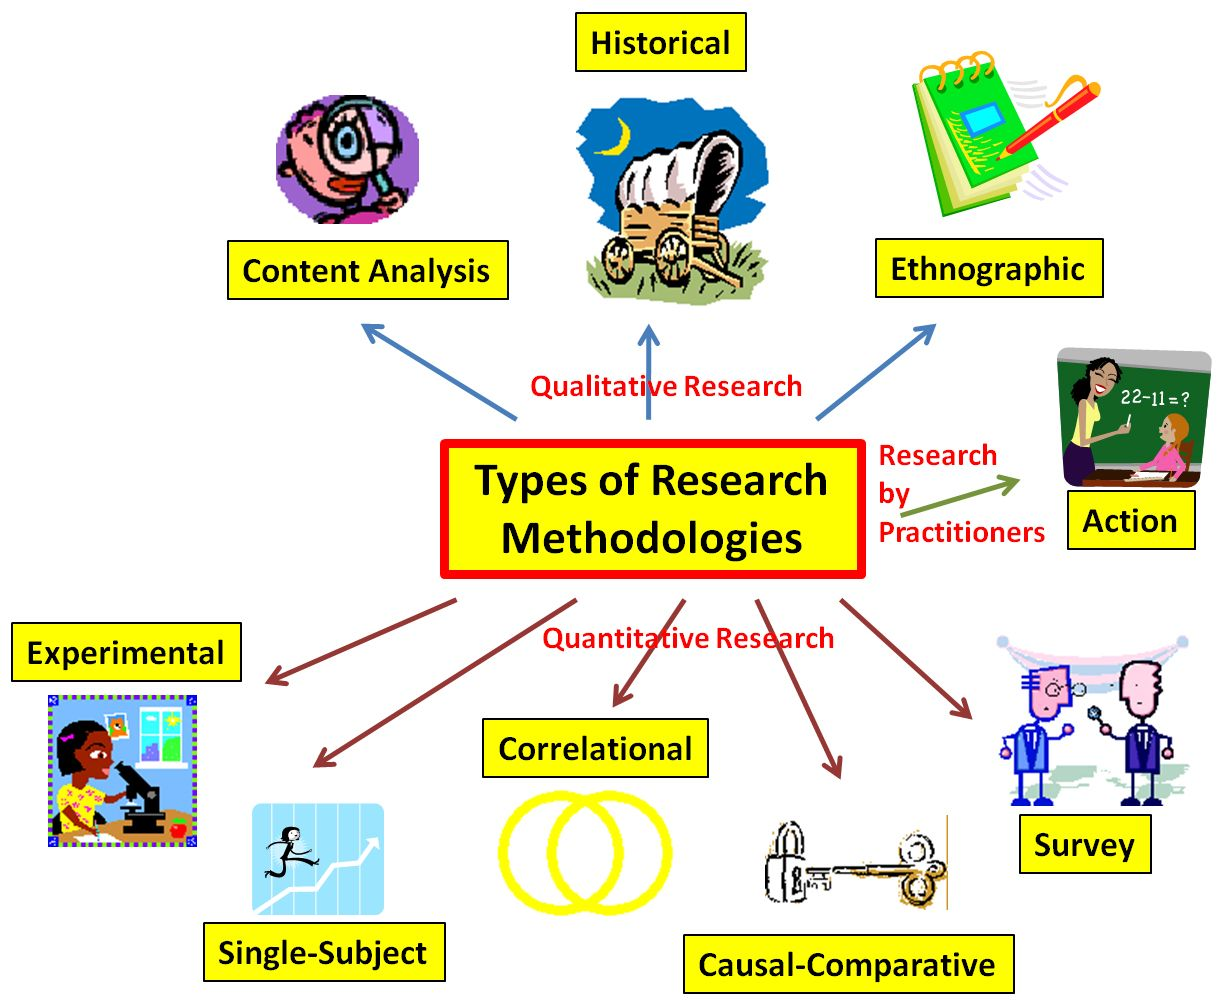 Images About Research Methods On Pinterest Crash Course eeedcdffdbcaadbfb Research Methods